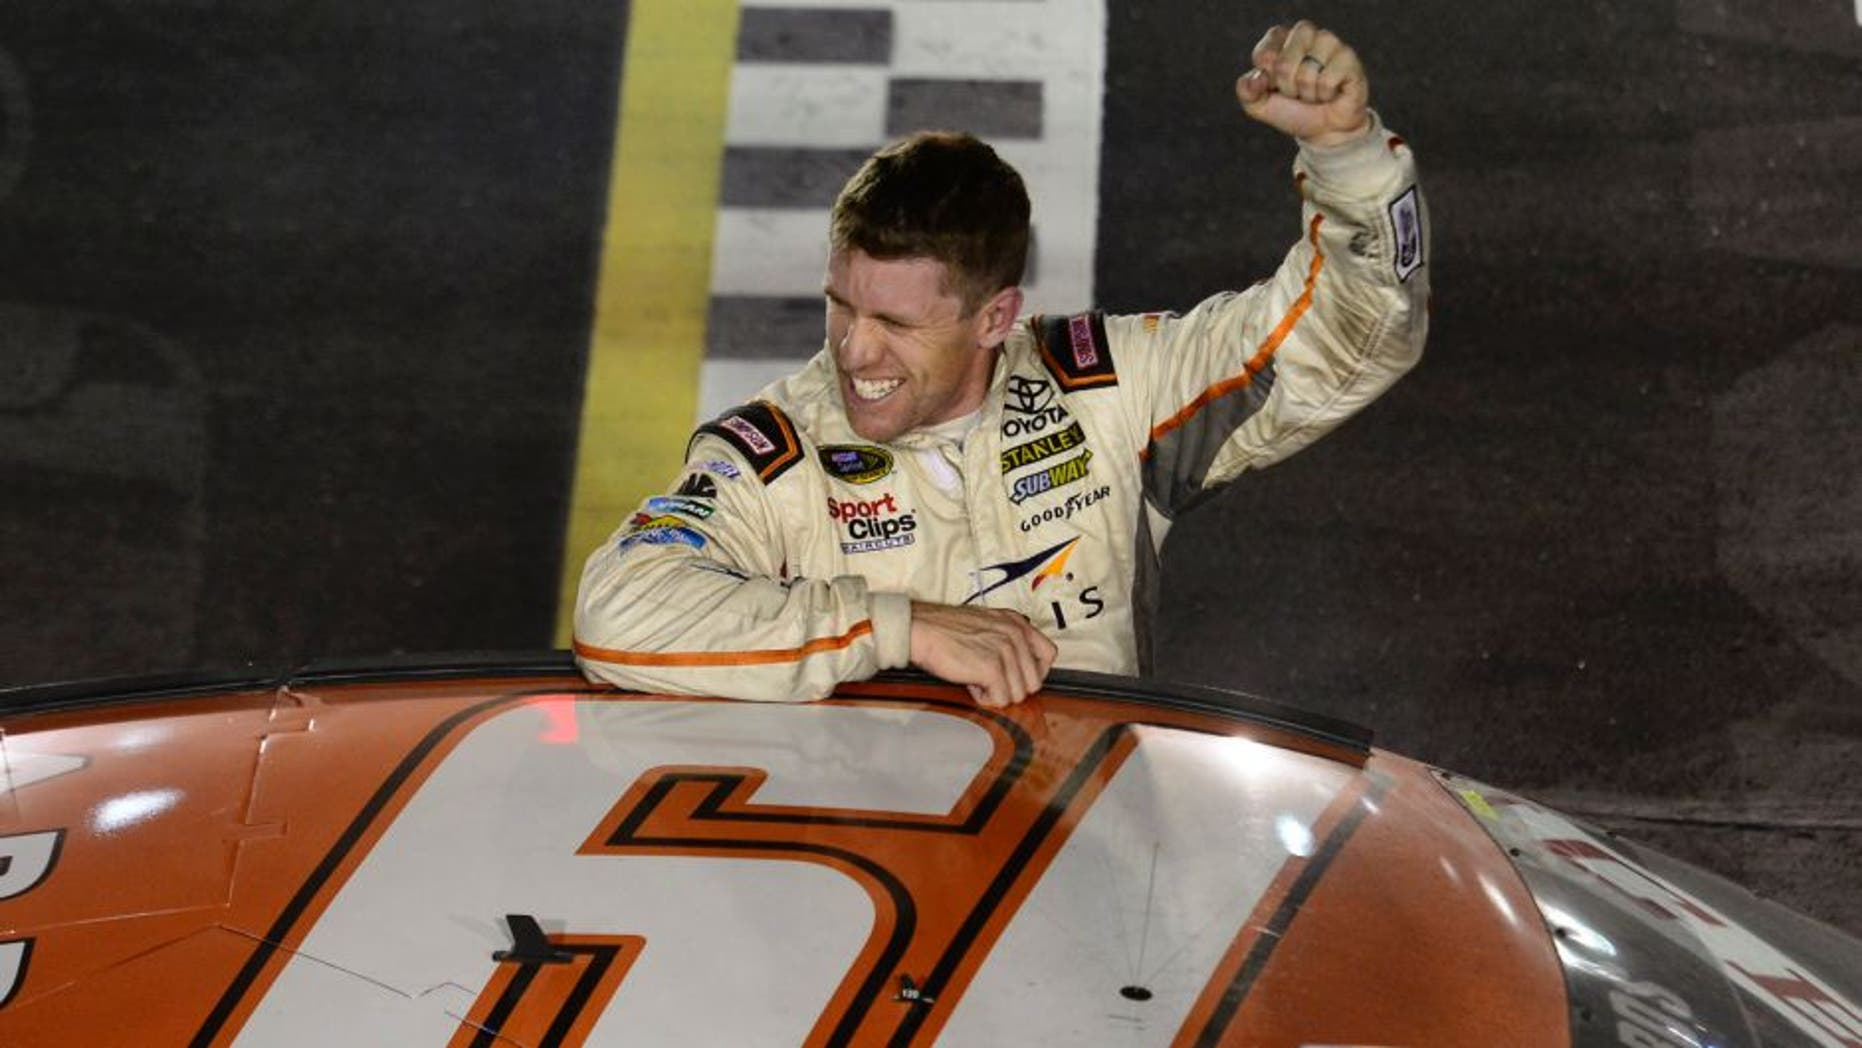 DARLINGTON, SC - SEPTEMBER 06: Carl Edwards, driver of the #19 ARRIS Toyota, salutes the crowd after winning the NASCAR Sprint Cup Series Bojangles' Southern 500 at Darlington Raceway on September 6, 2015 in Darlington, South Carolina. (Photo by Robert Laberge/NASCAR via Getty Images)